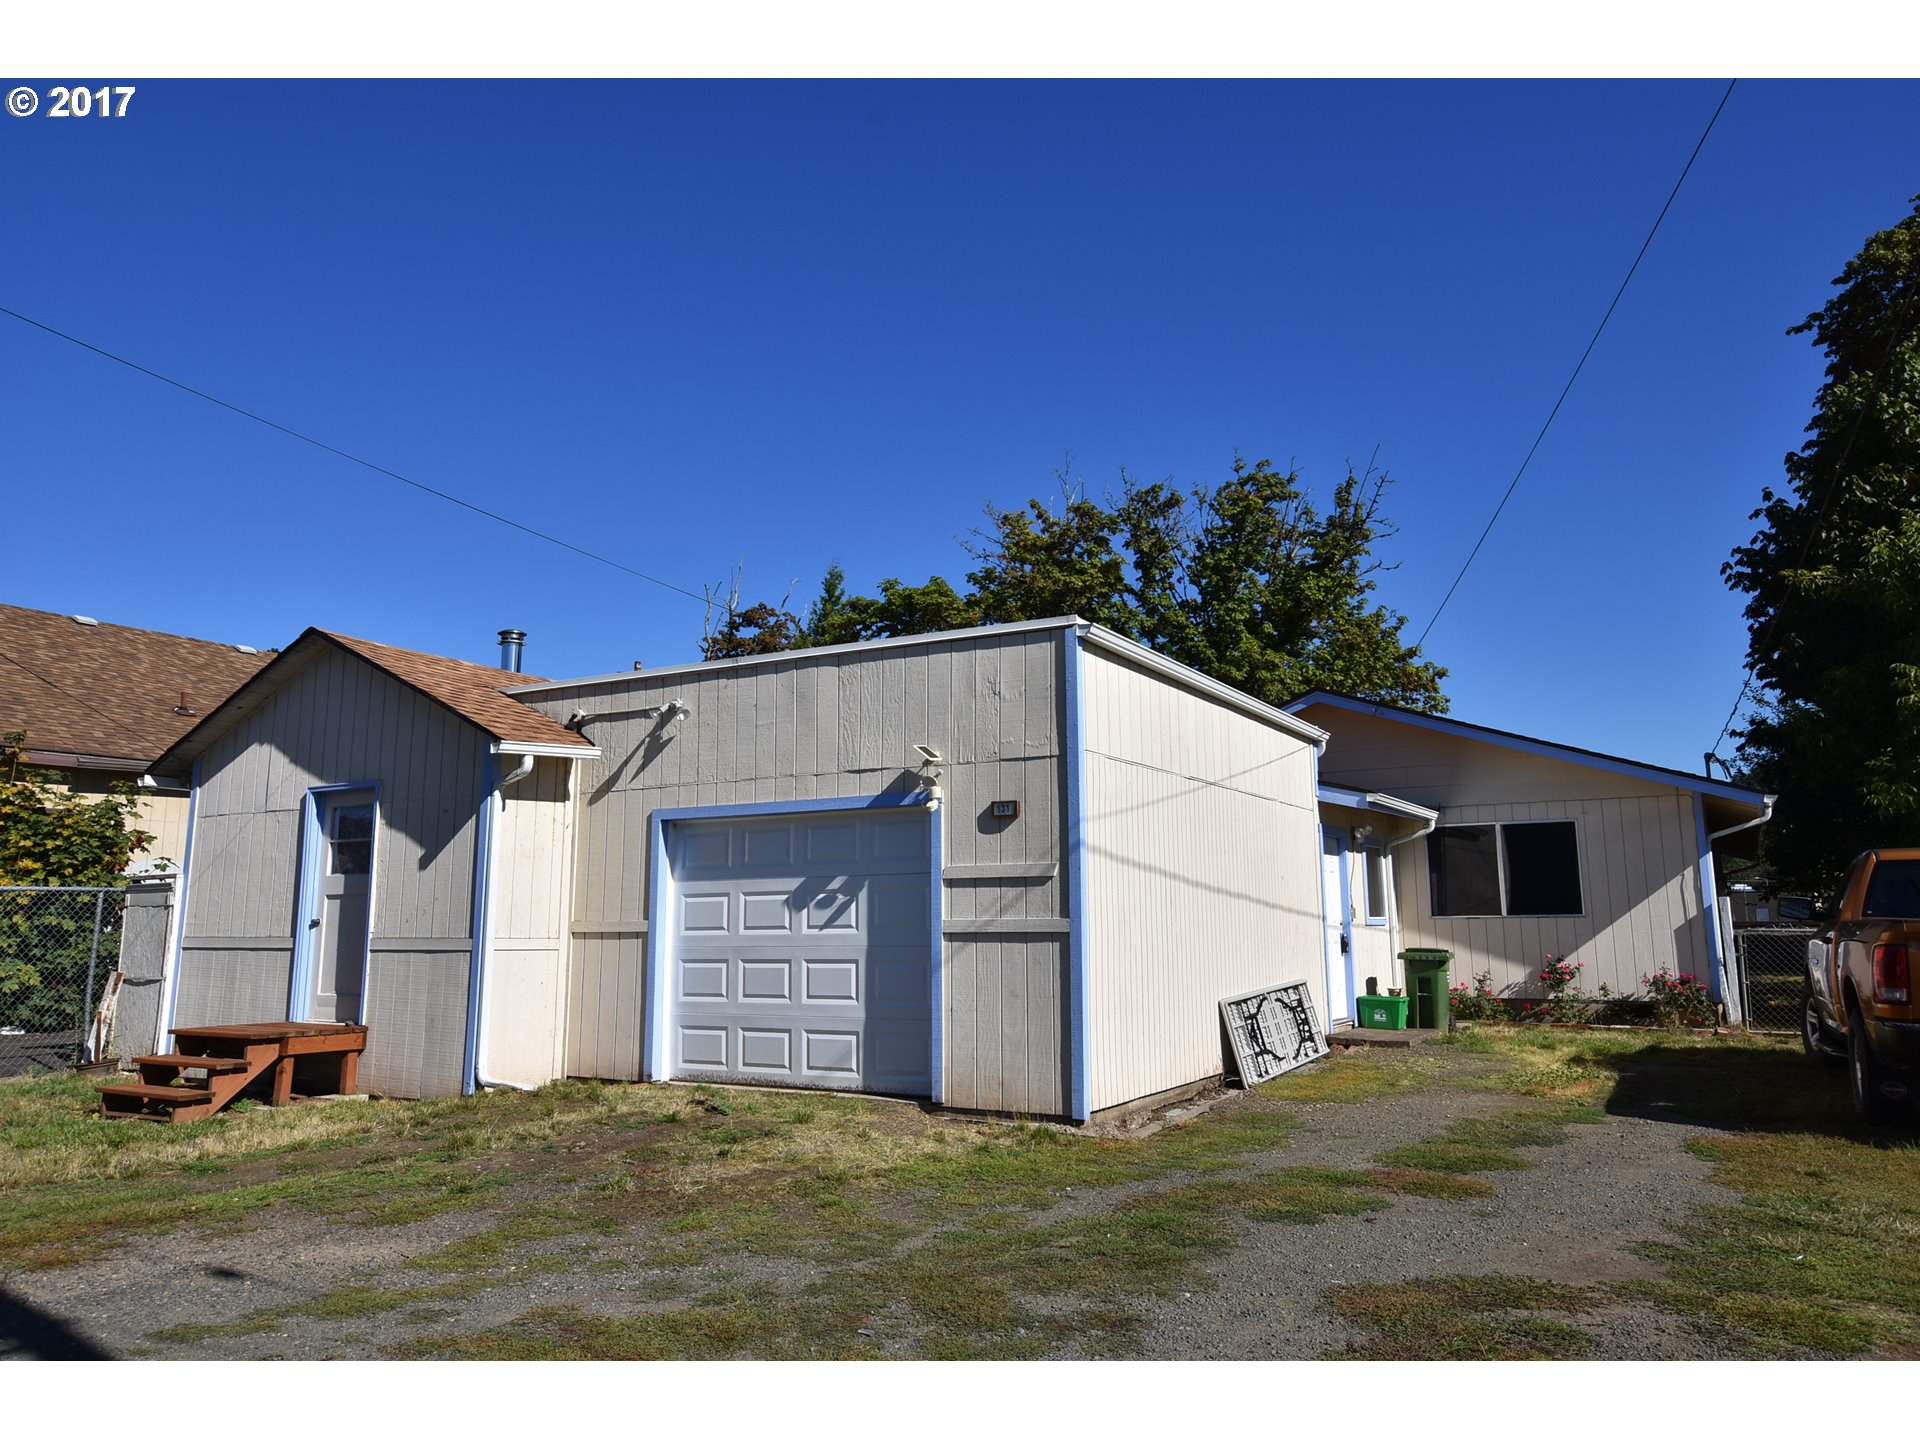 131 N 10TH ST, Cottage Grove, OR 97424